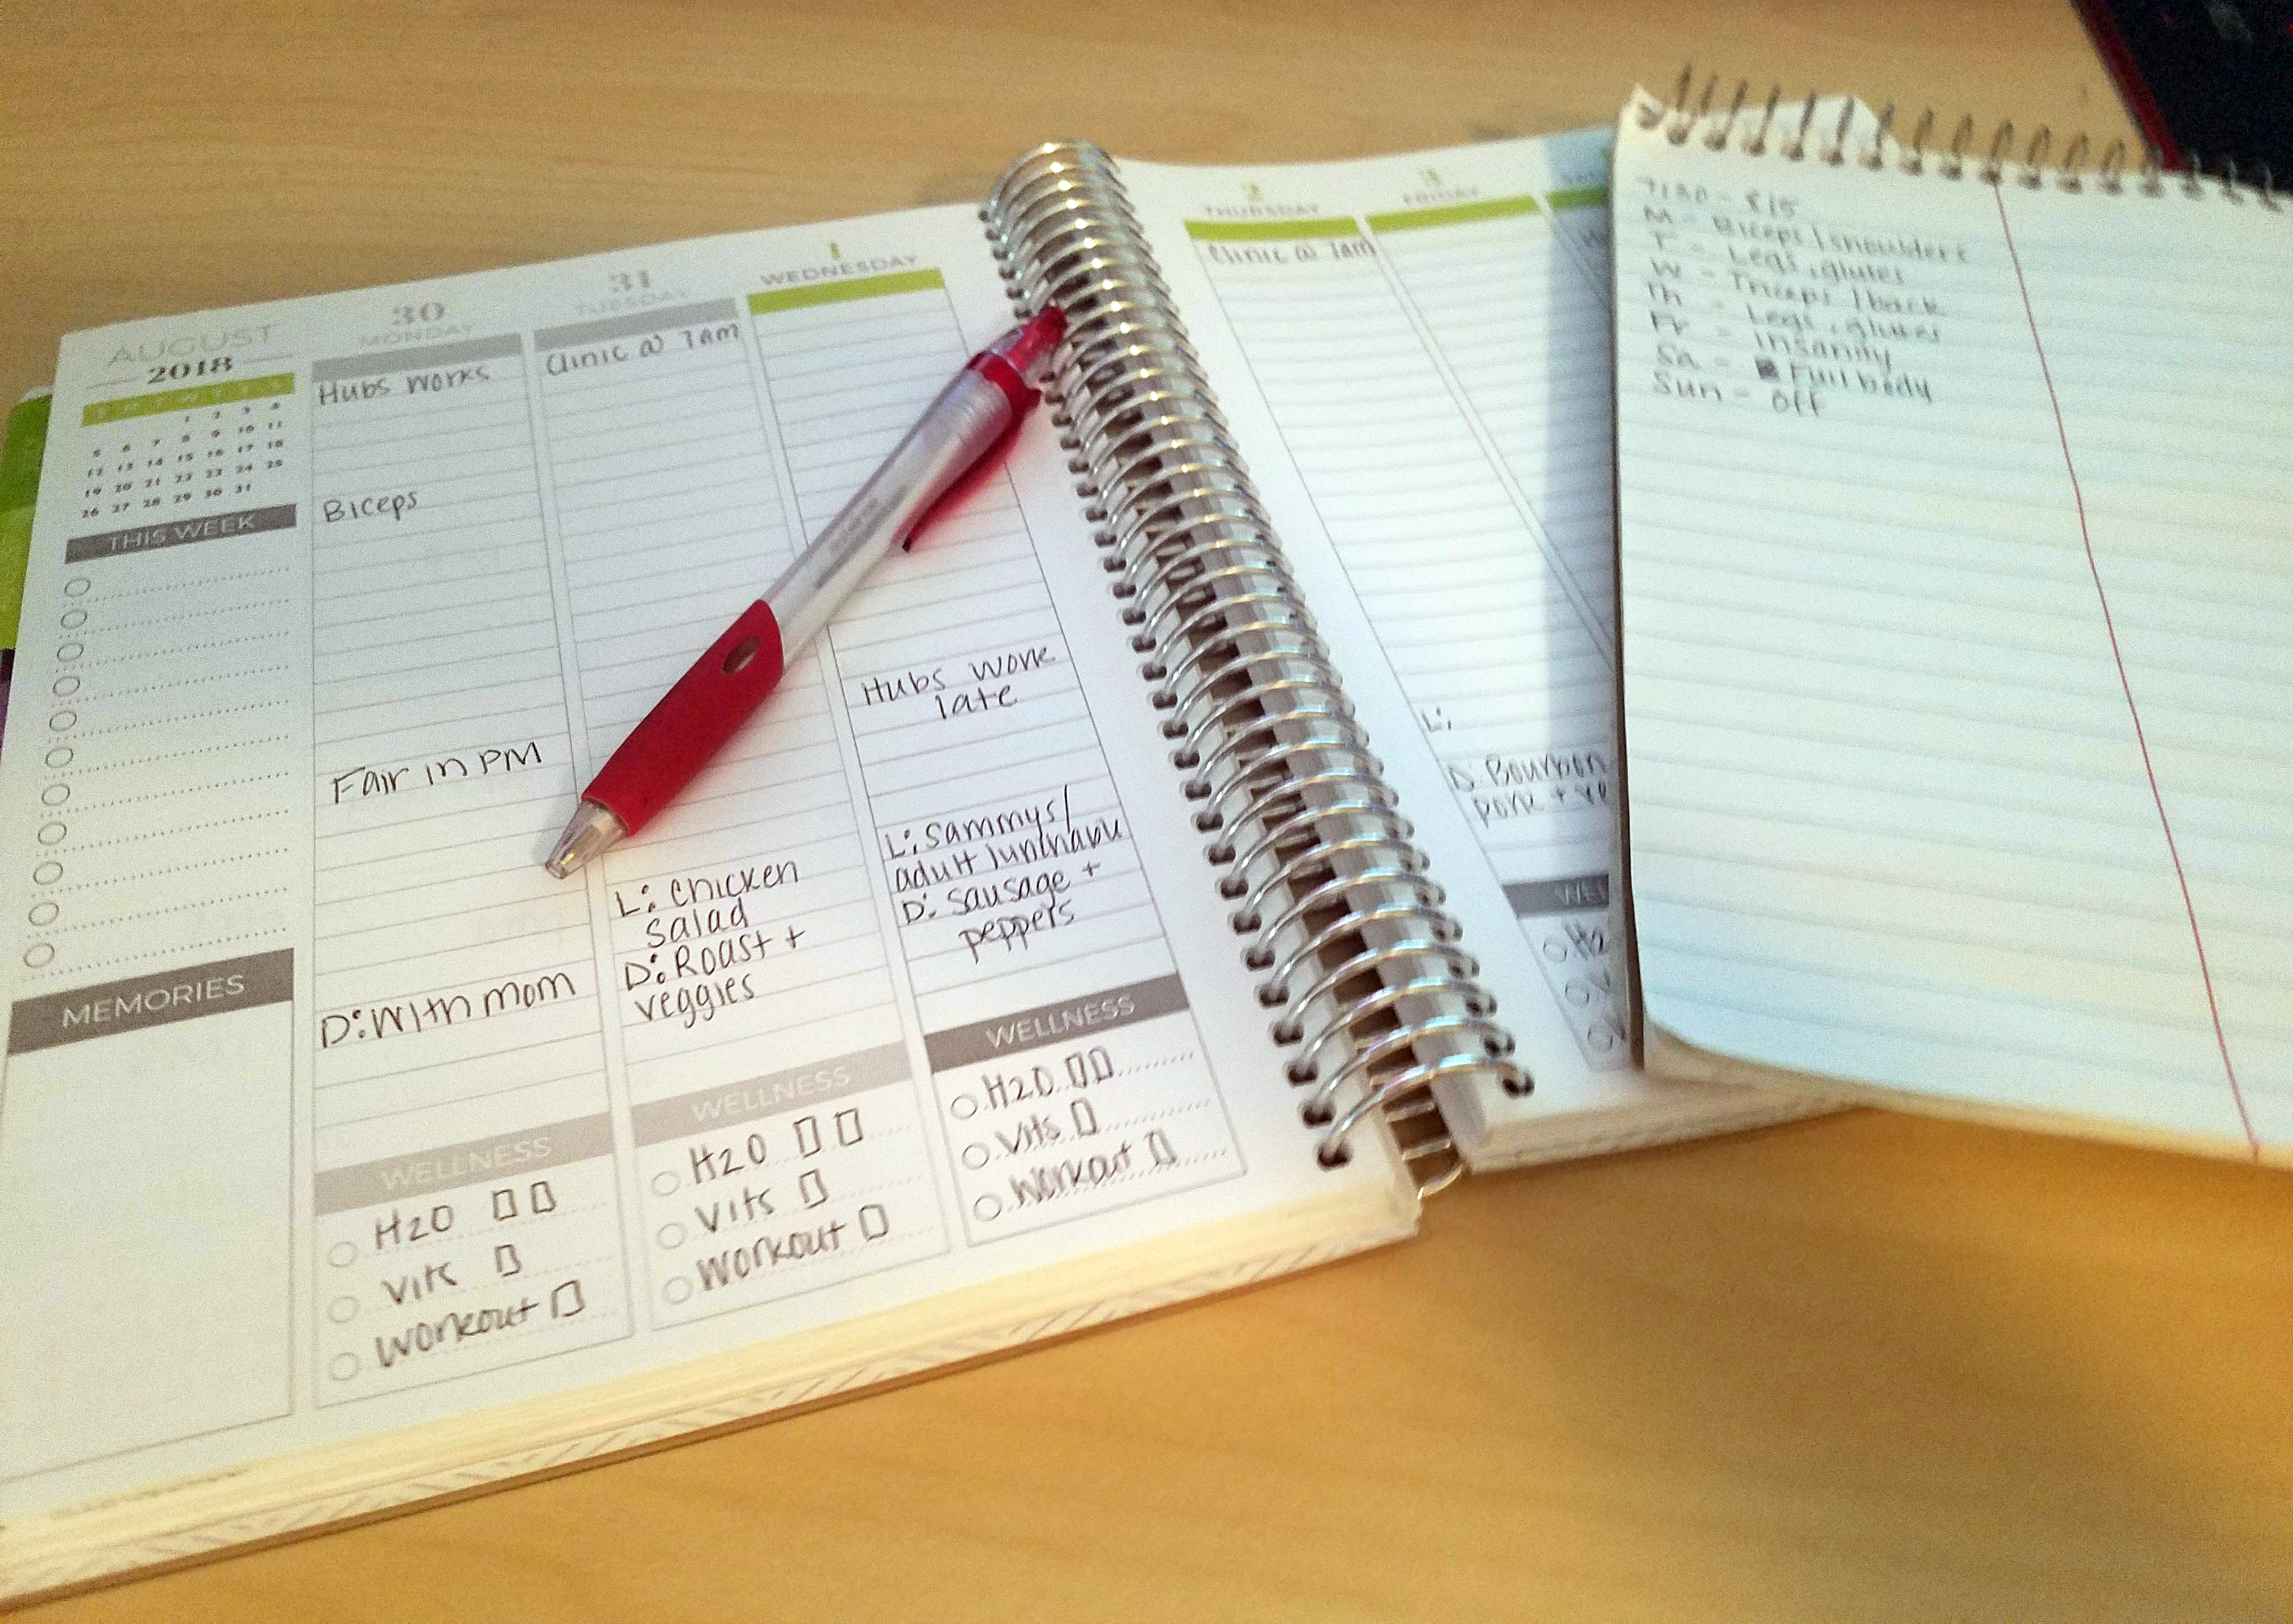 Creating a plan for better health